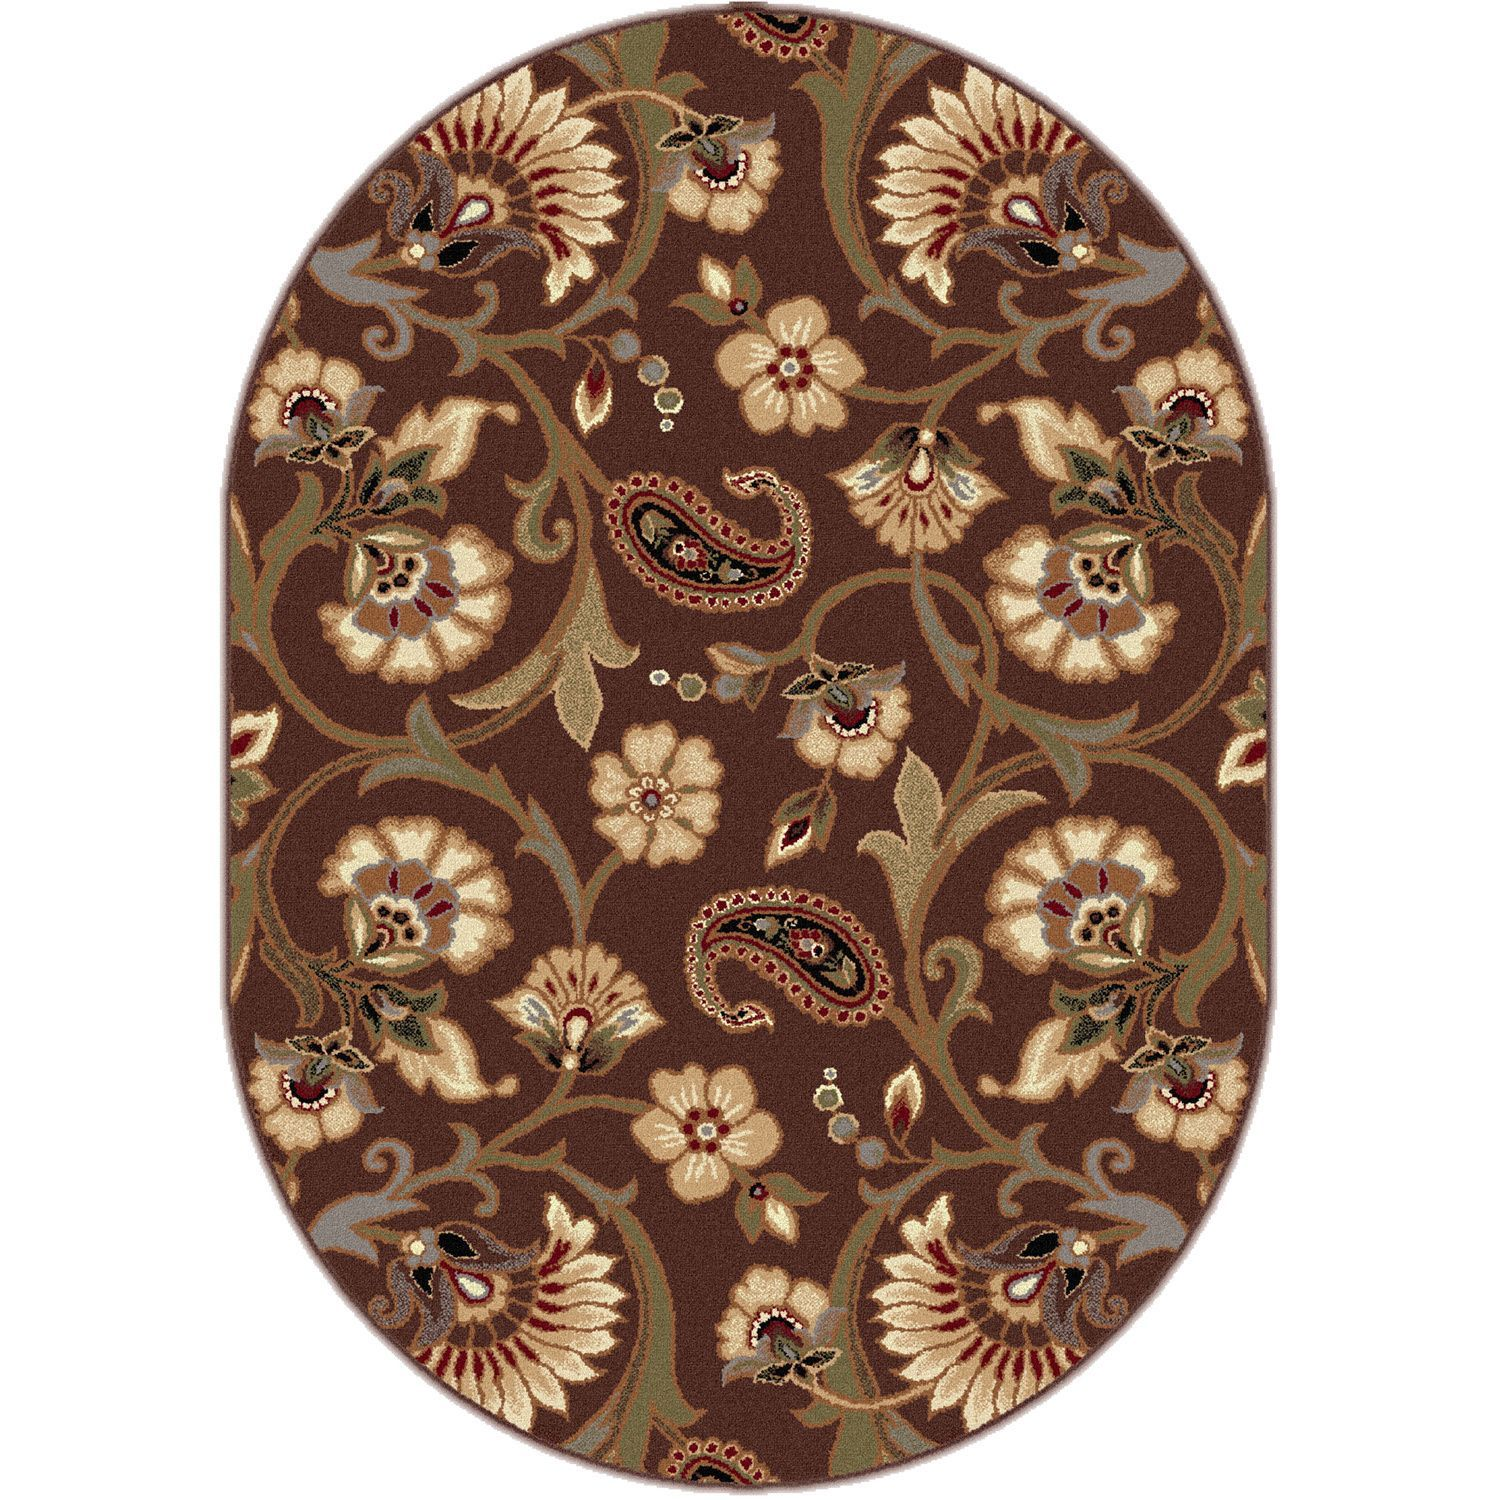 Ikin Jewel Tone Firenze Rug Area Rugs